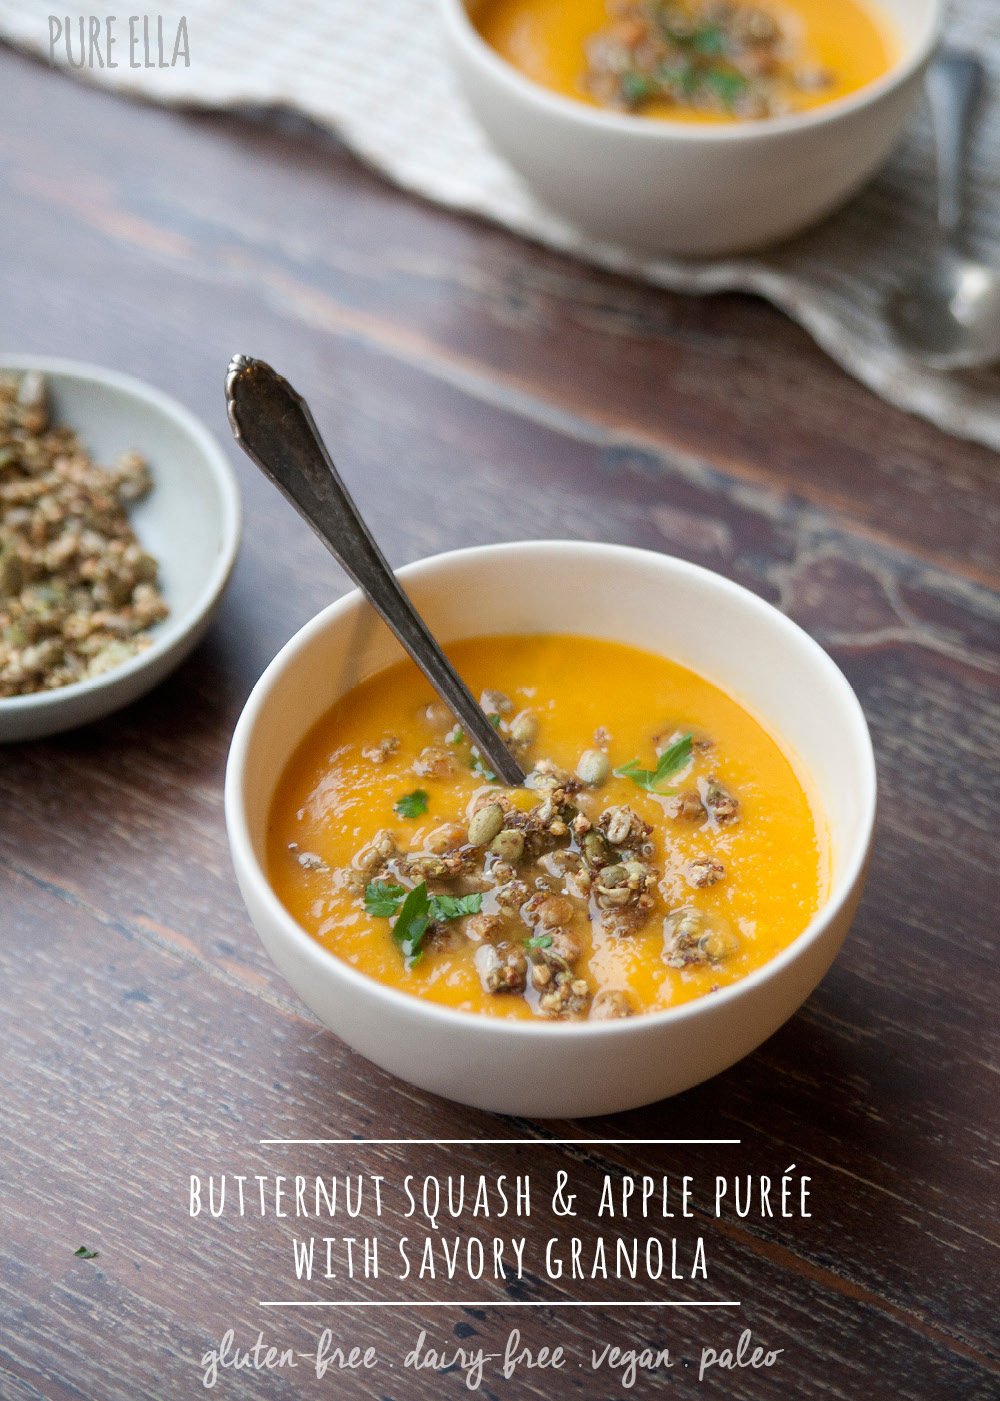 Pure-Ella-Butternut-Squash-Apple-Puree-Soup